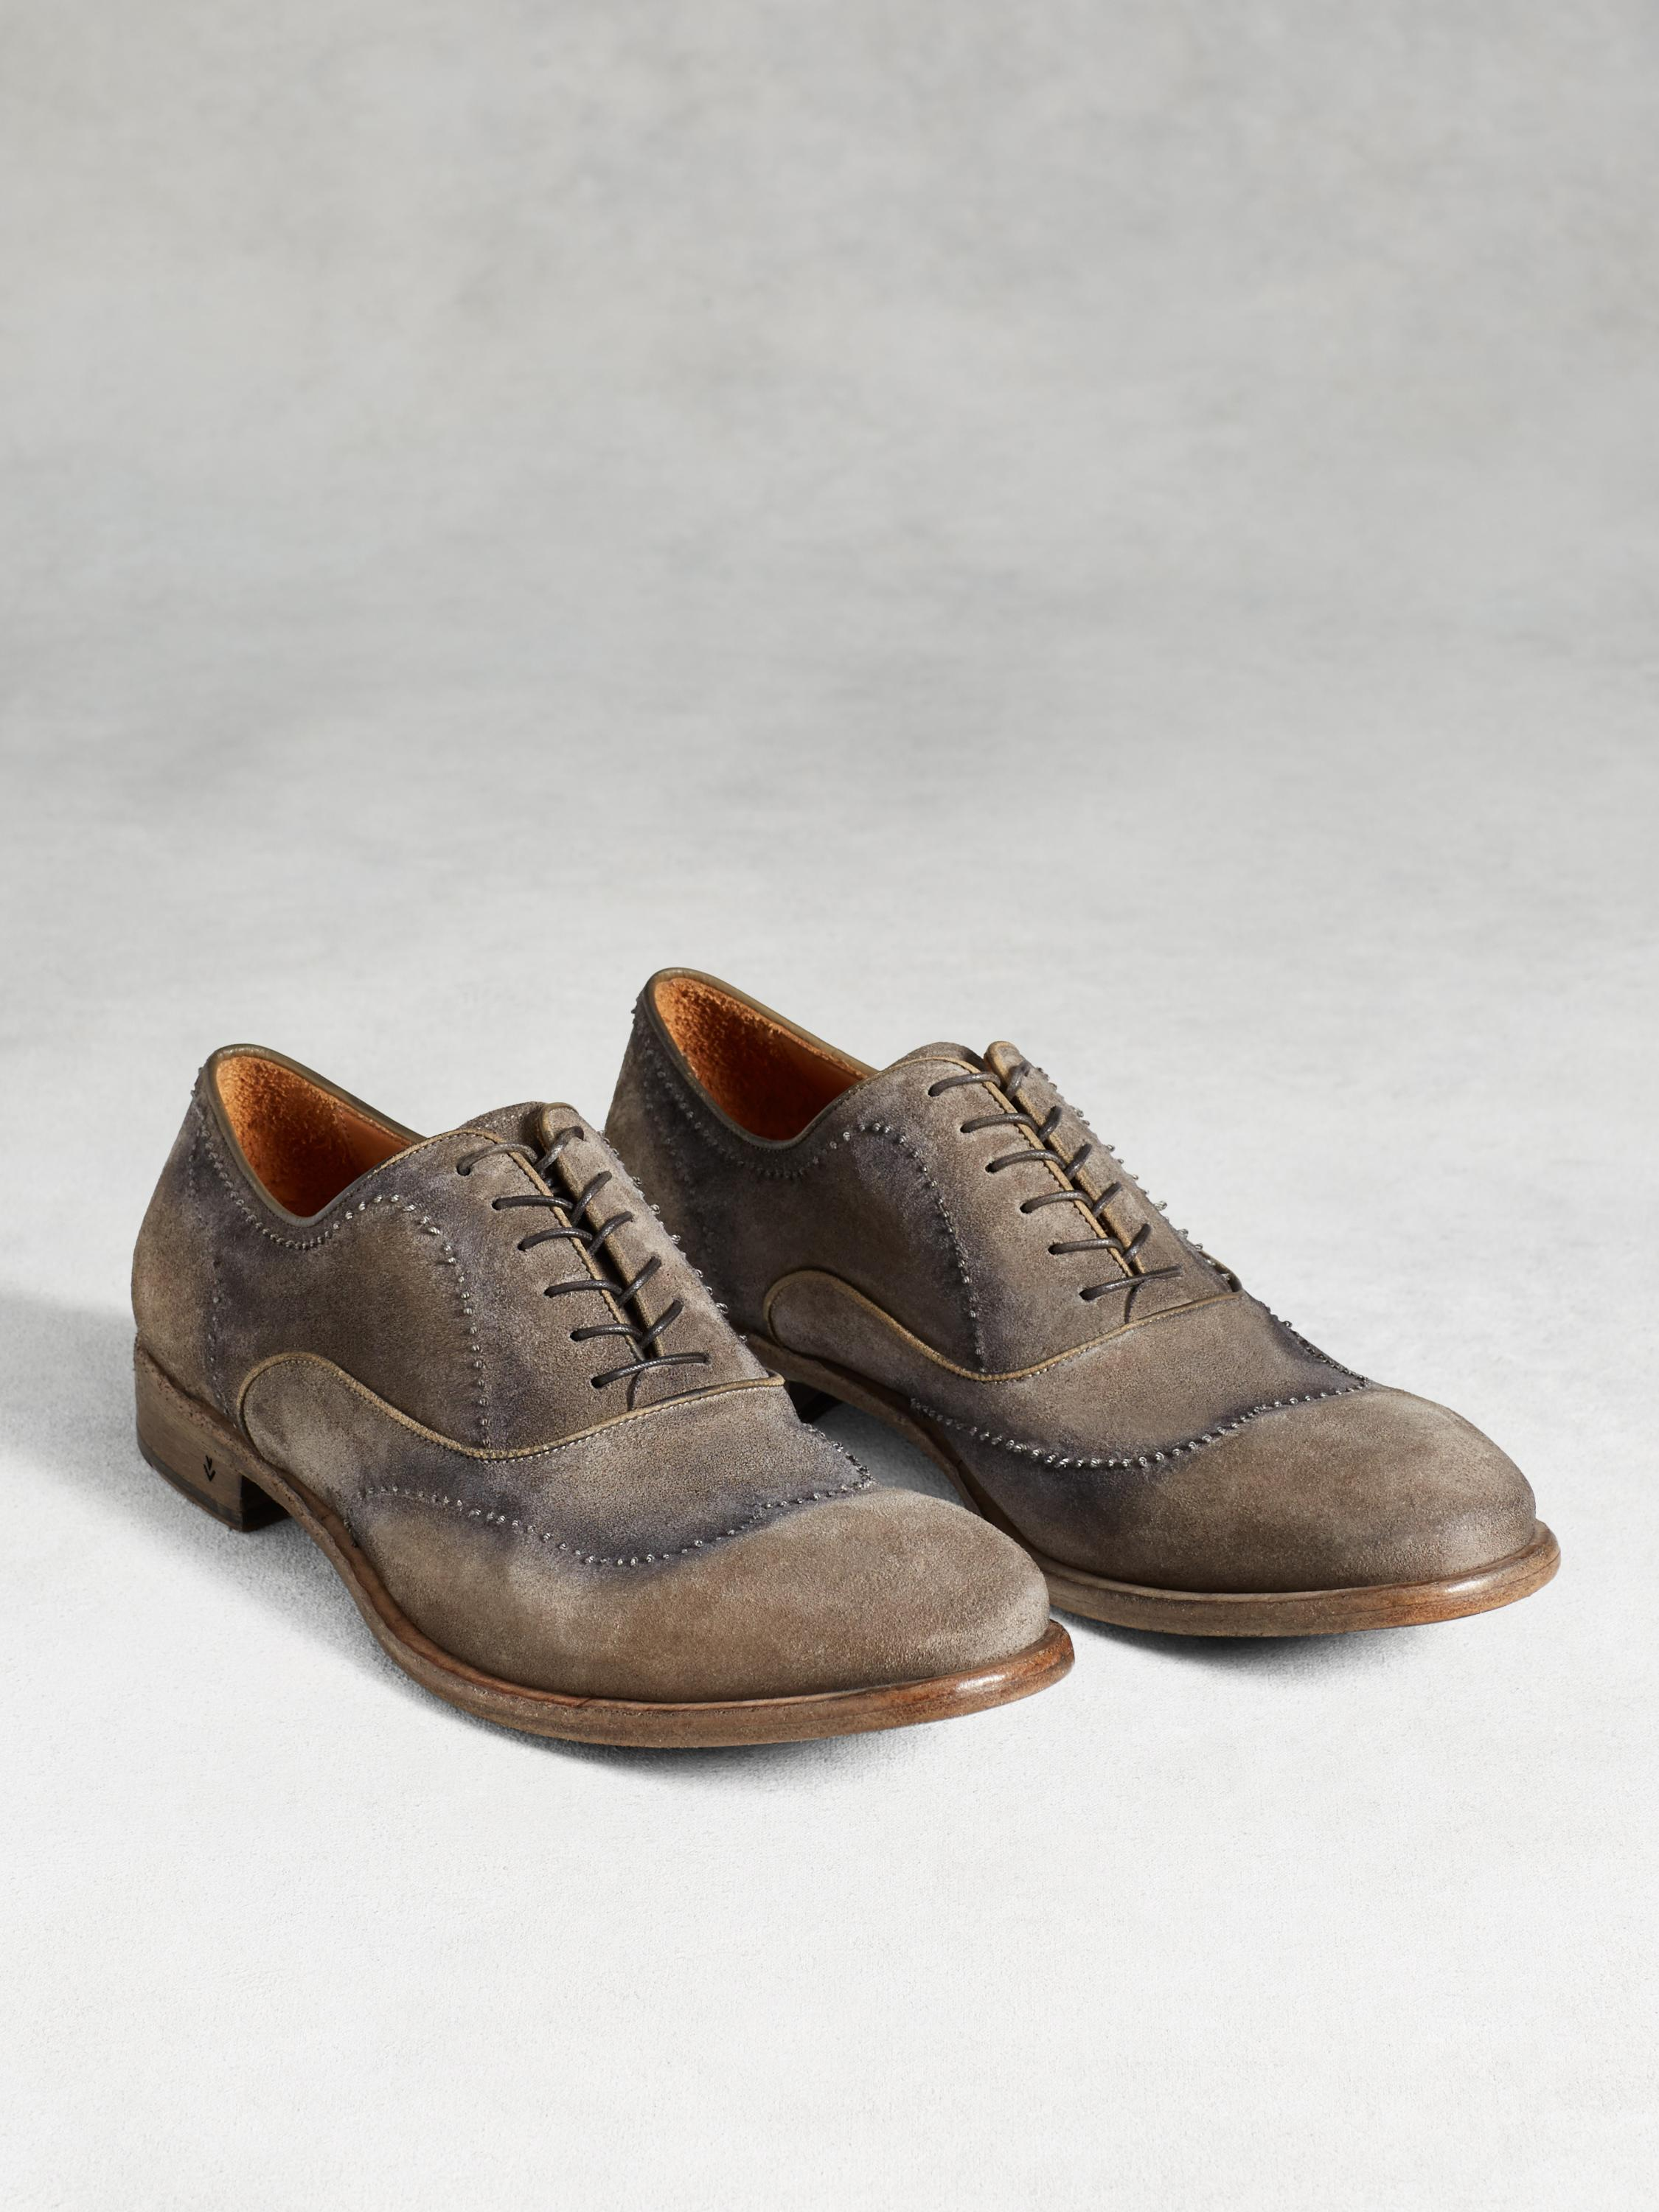 Fleetwood Cut Stitch Wingtip